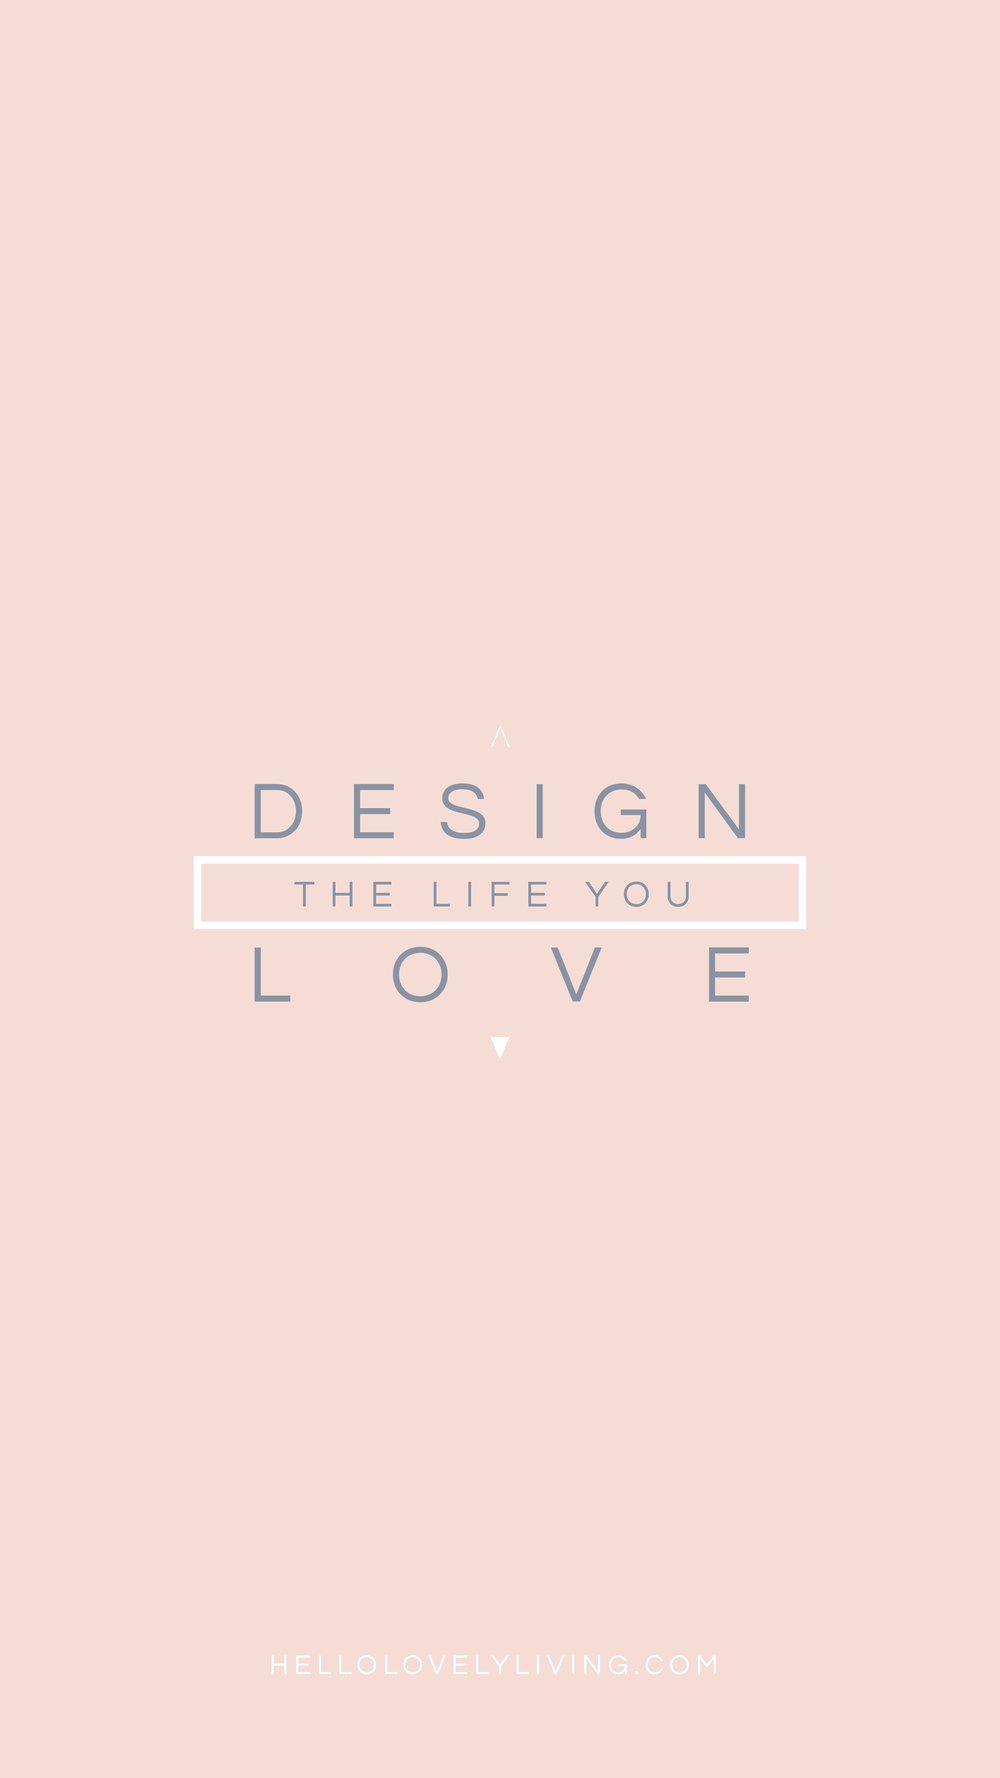 Design The Life You Love | HelloLovelyLiving.com